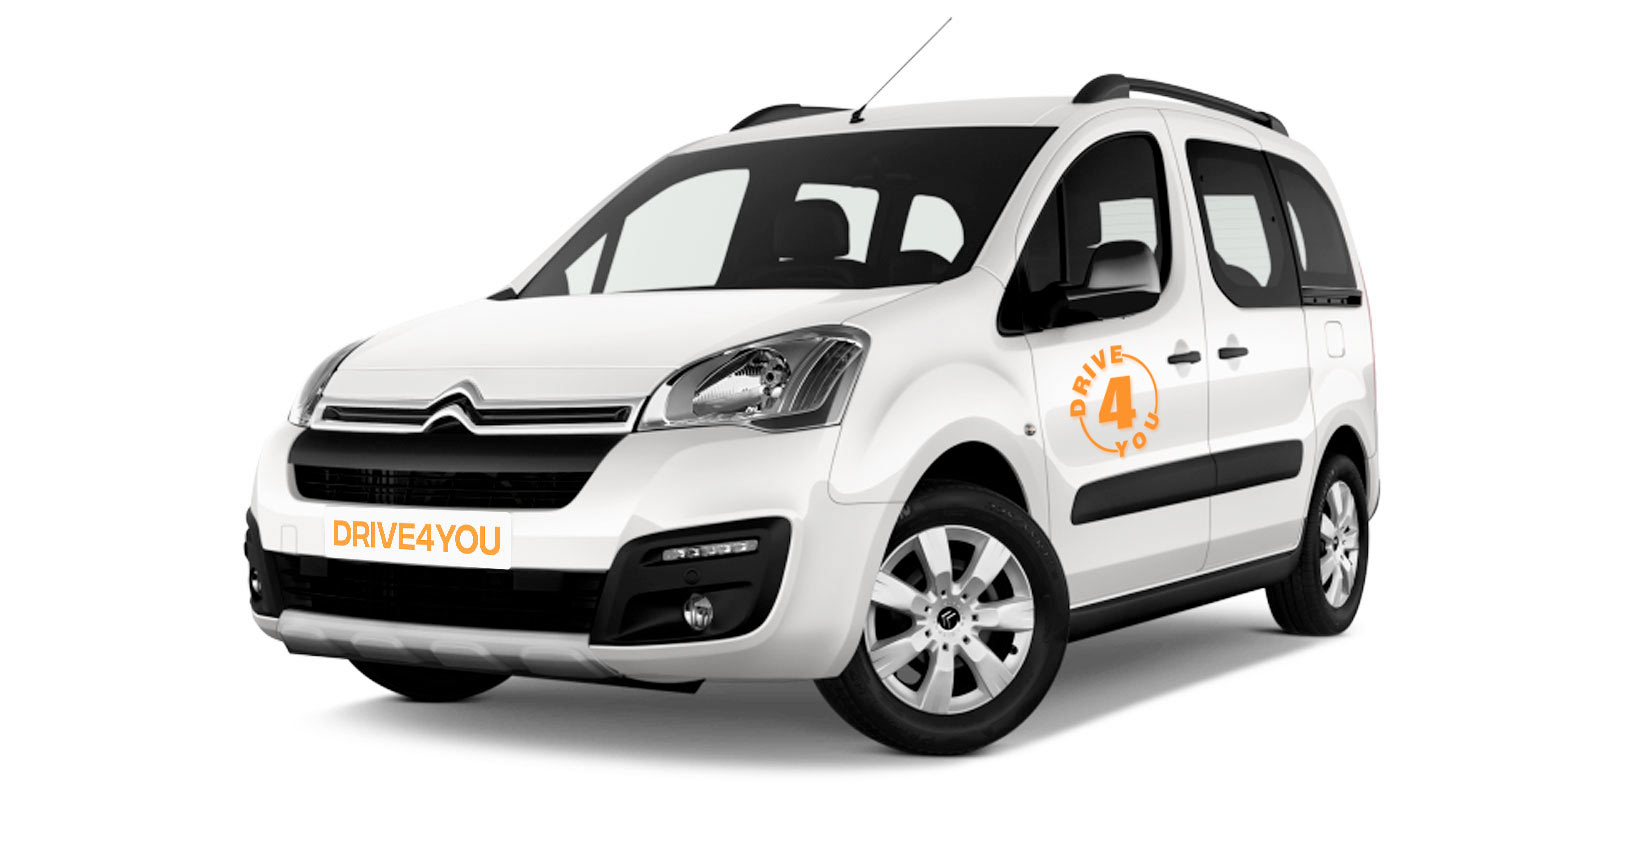 citroen-berlingo-drive4you-7-places